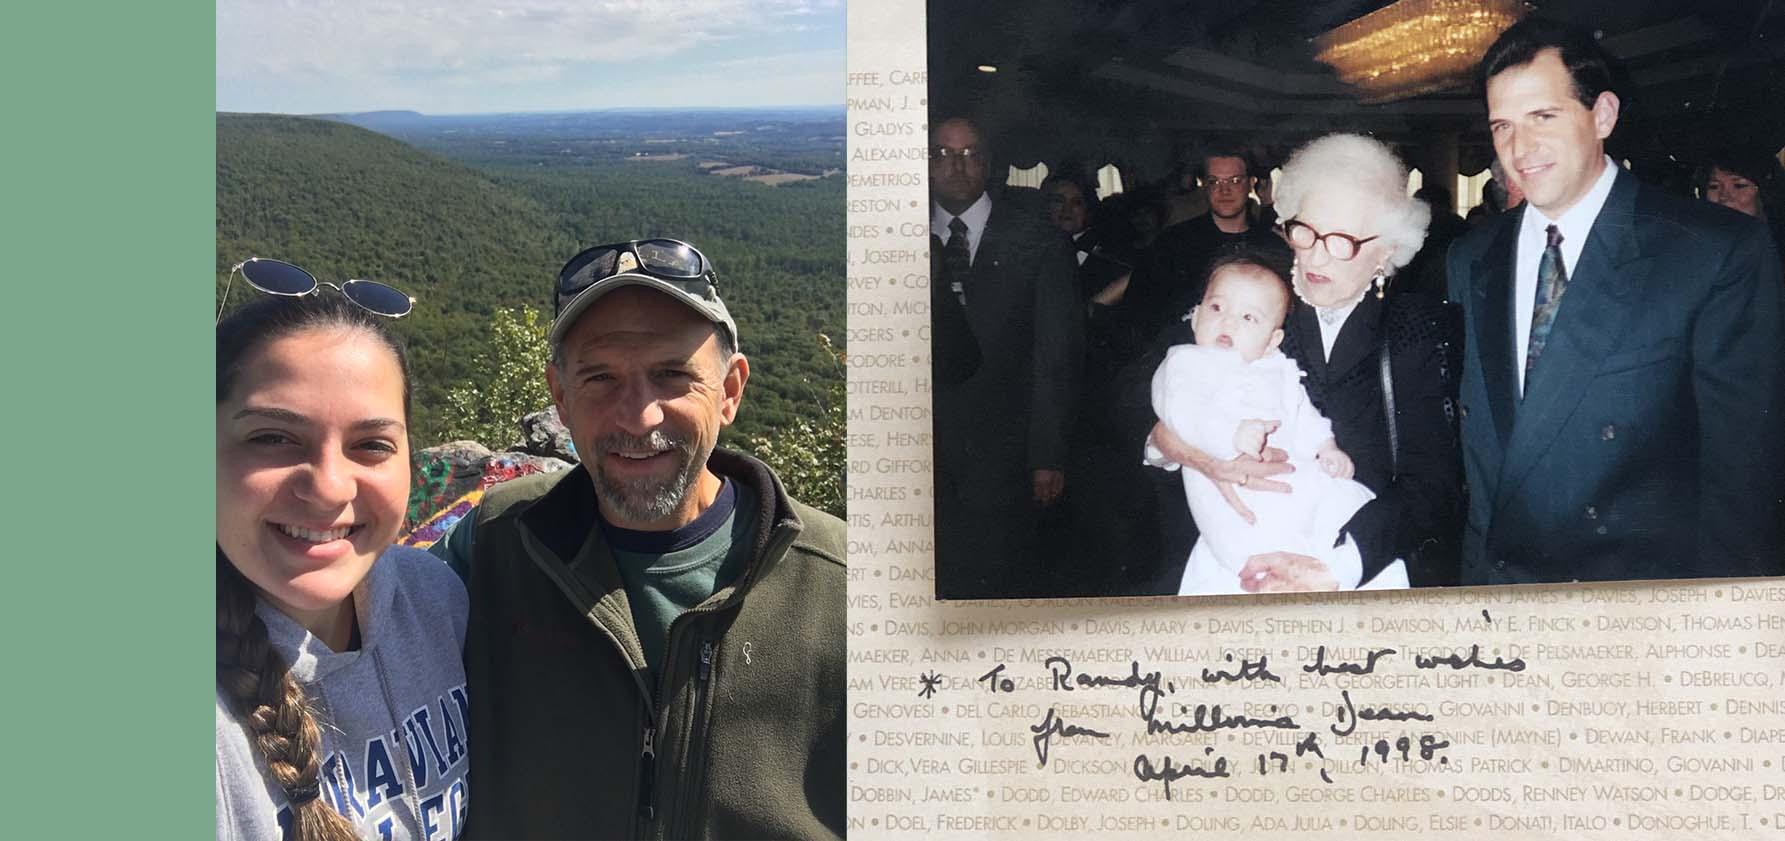 Left, Randy Haffling hiking with his daughter; right, Randy and baby Stephanie meet the last living survivor of the Titanic, Millvina Dean.